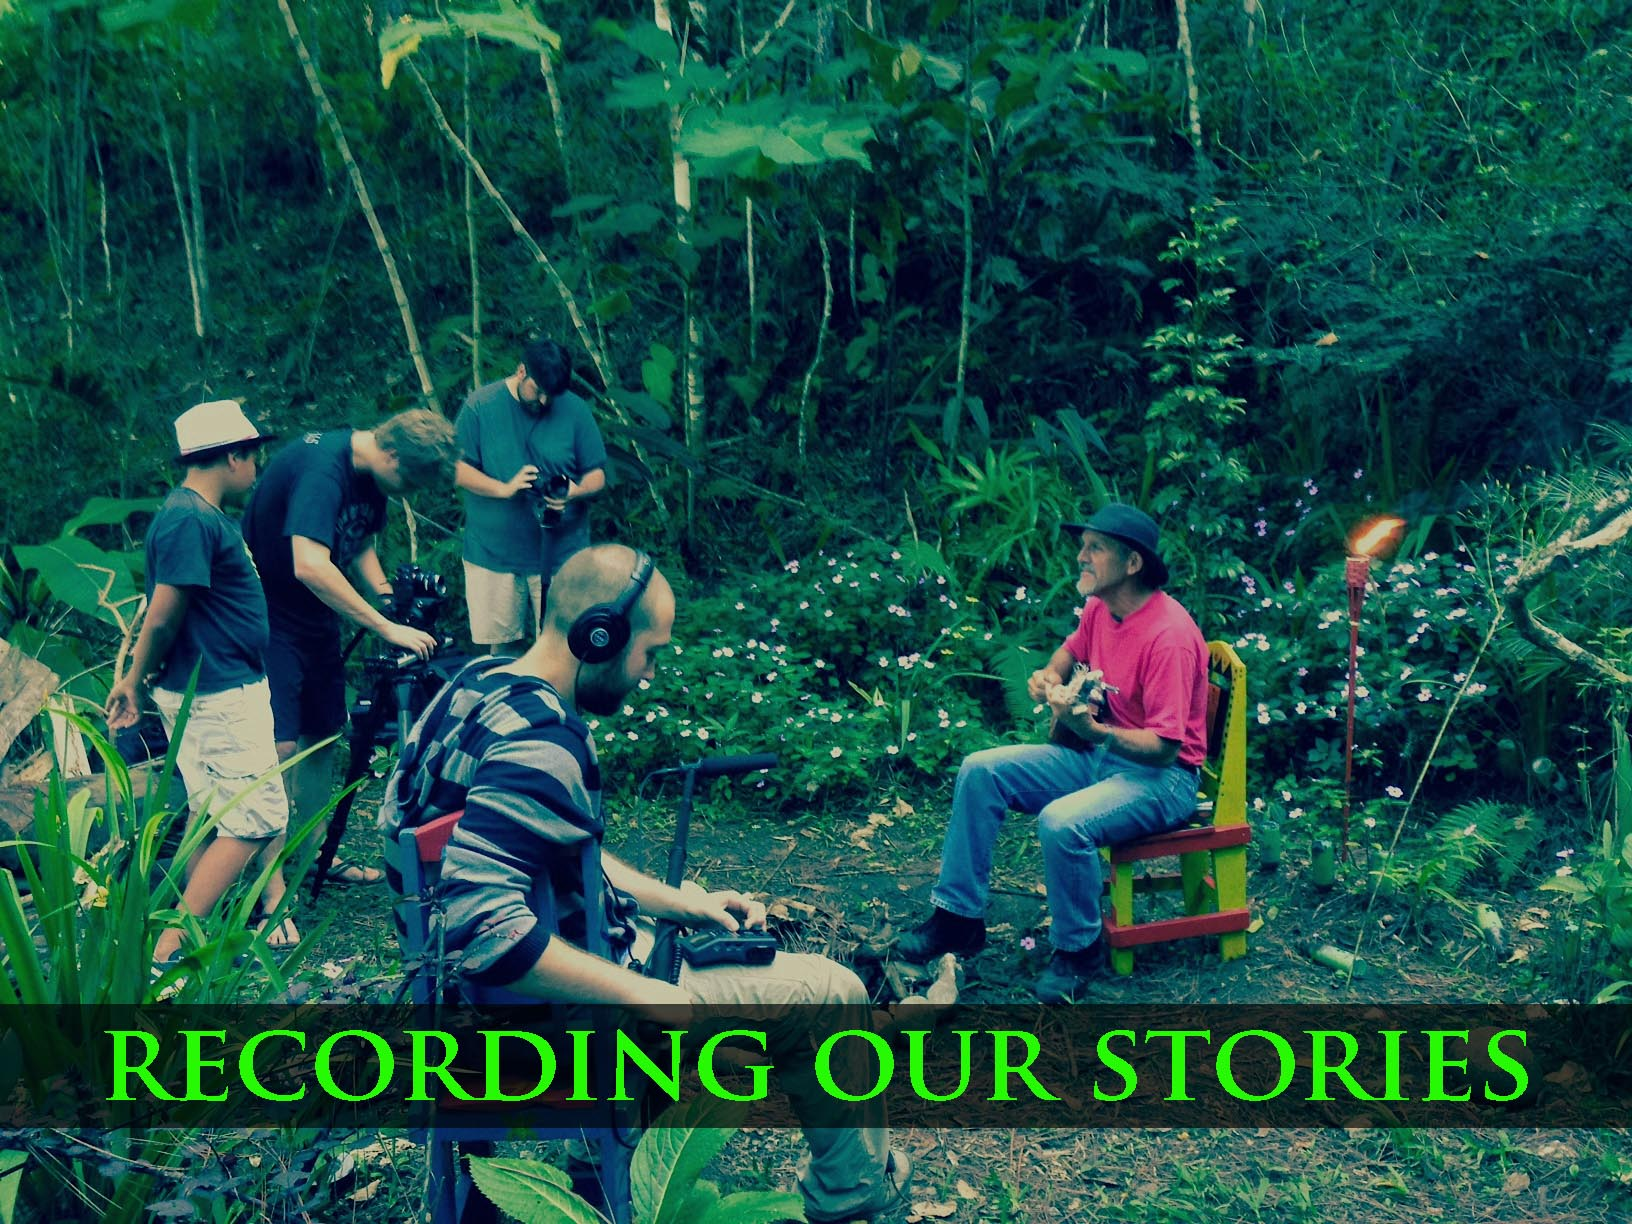 recording our stories